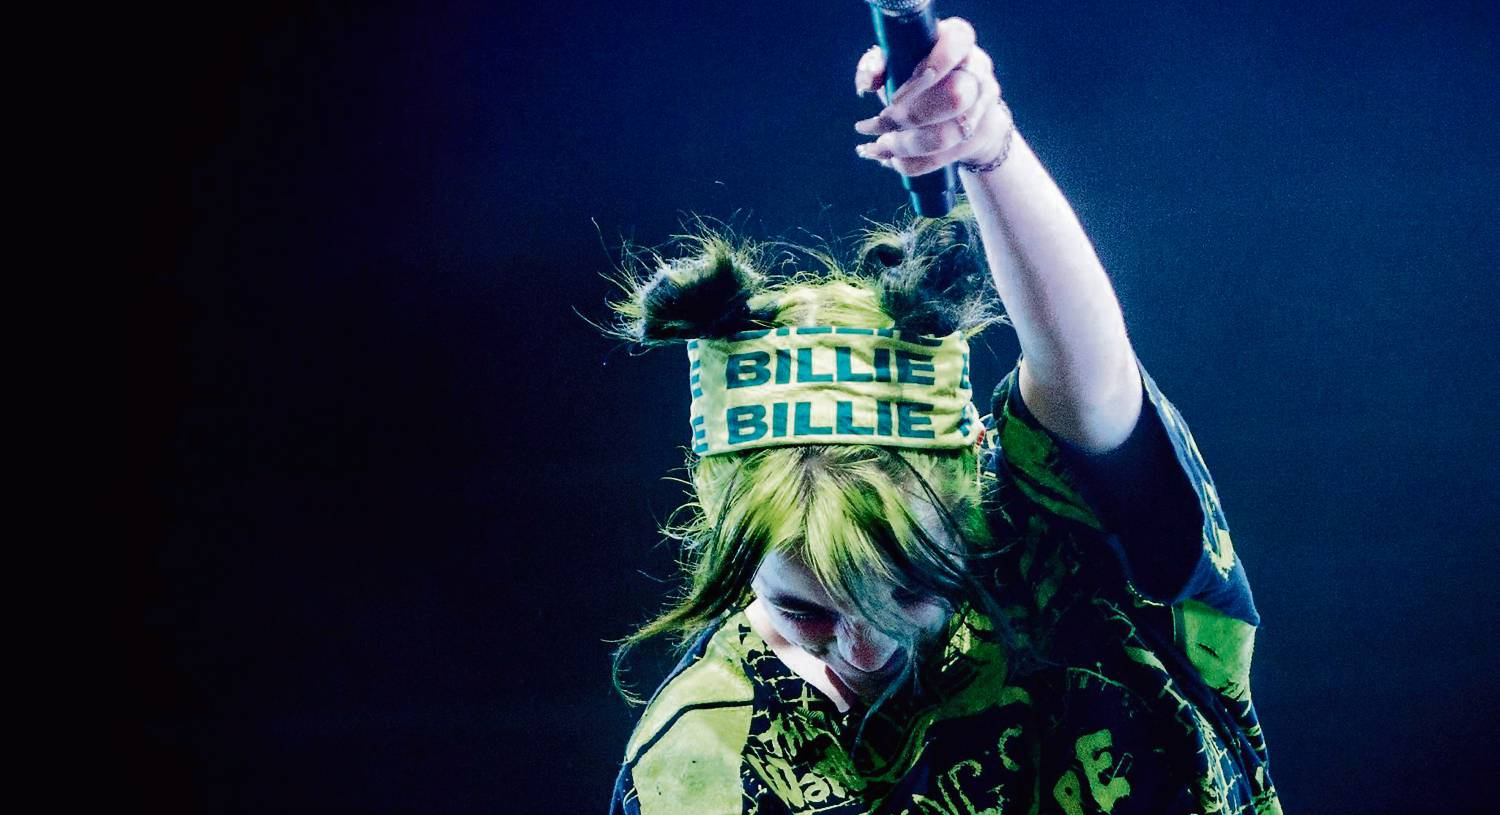 Billie Eilish defies your expectations and sings her own life story